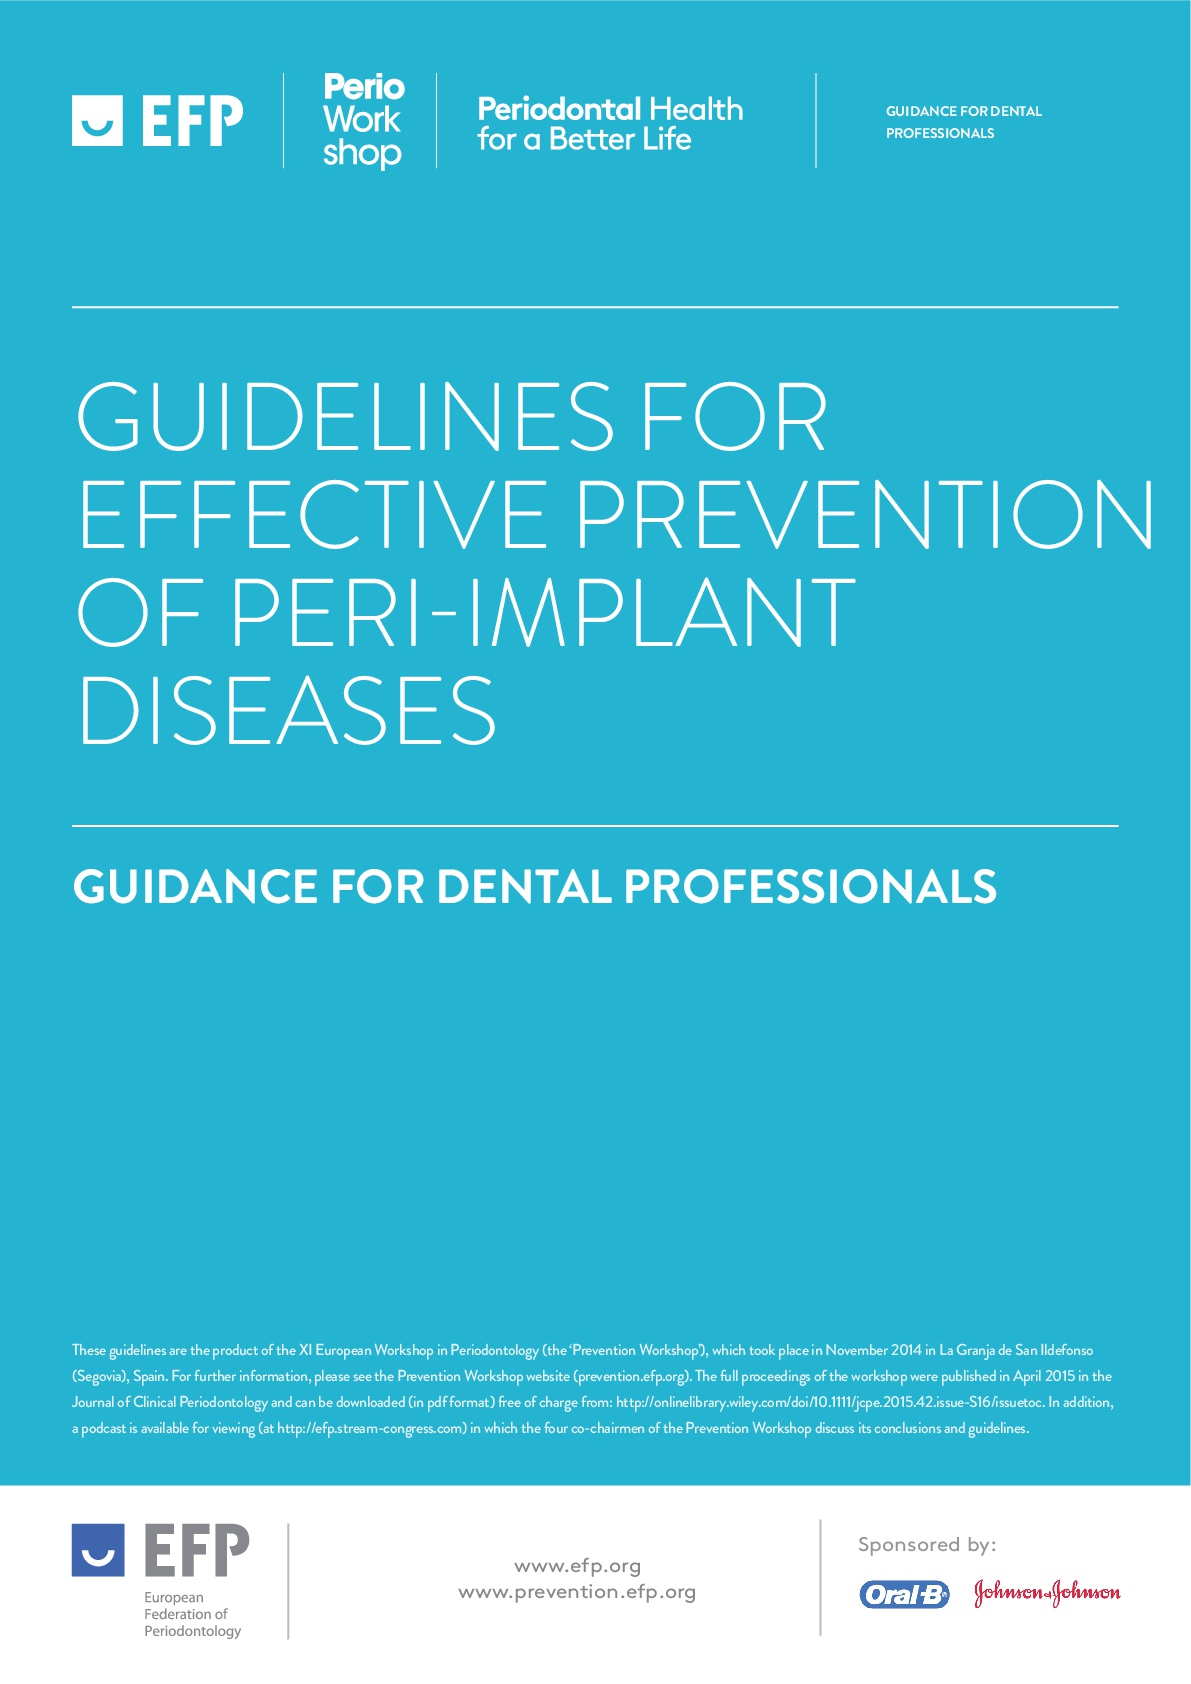 Prevention-of-peri-implant-diseases-guidance-for-dental-professionals-(1)-001